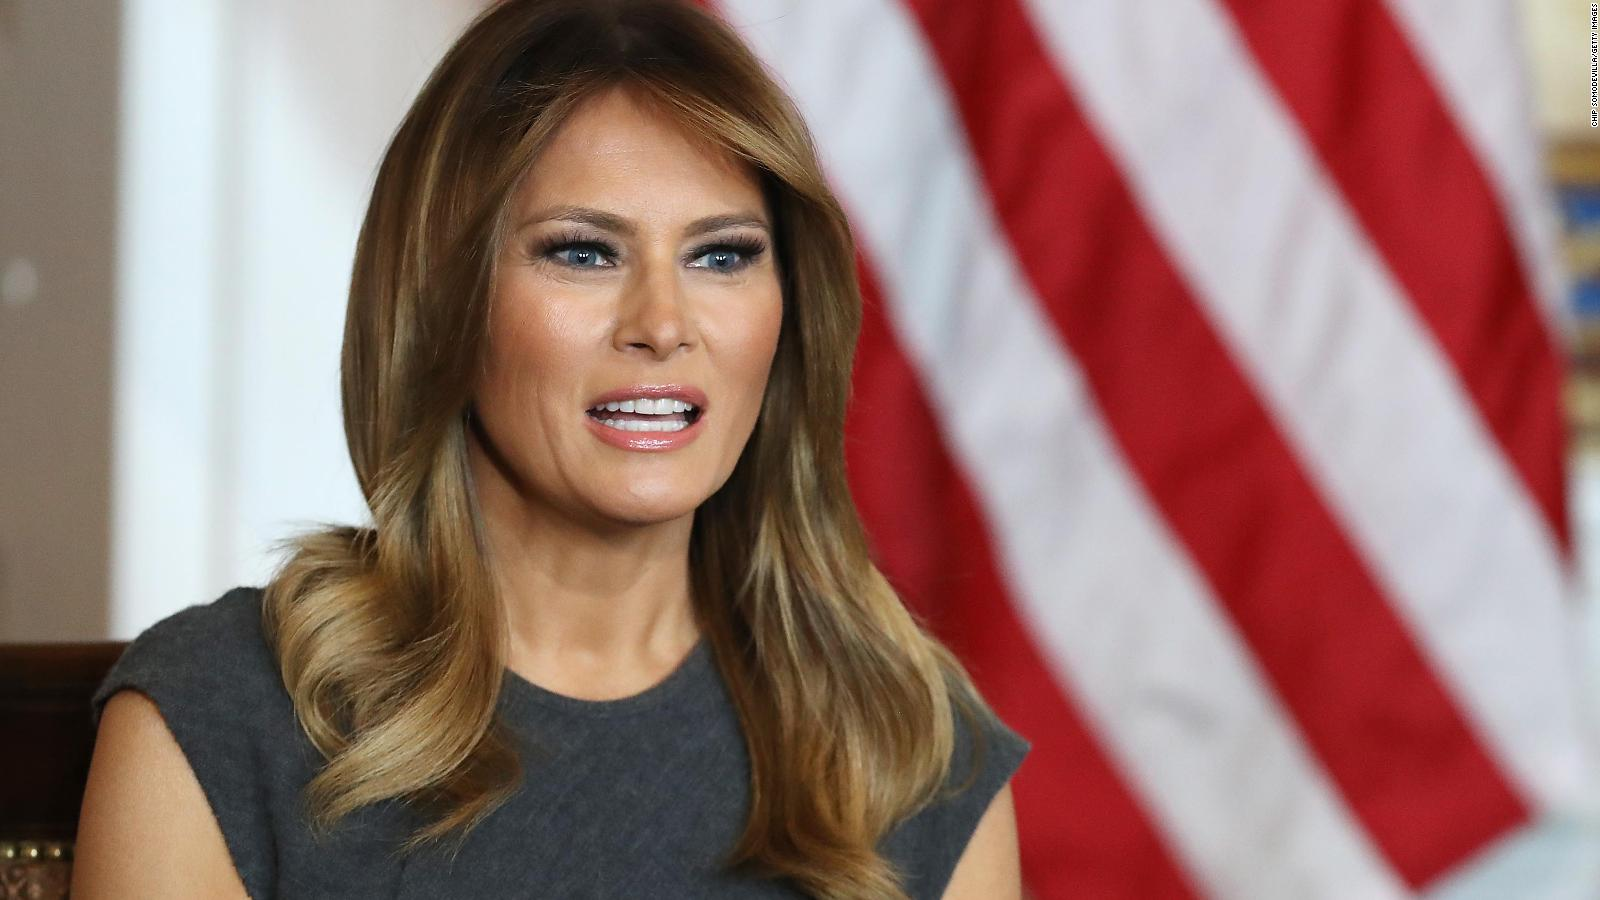 Melania Trump – Phone Call Recording Of The FLOTUS Reveals How She Feels About The Kids Separated At The Border: 'Give Me a F***ing Break'